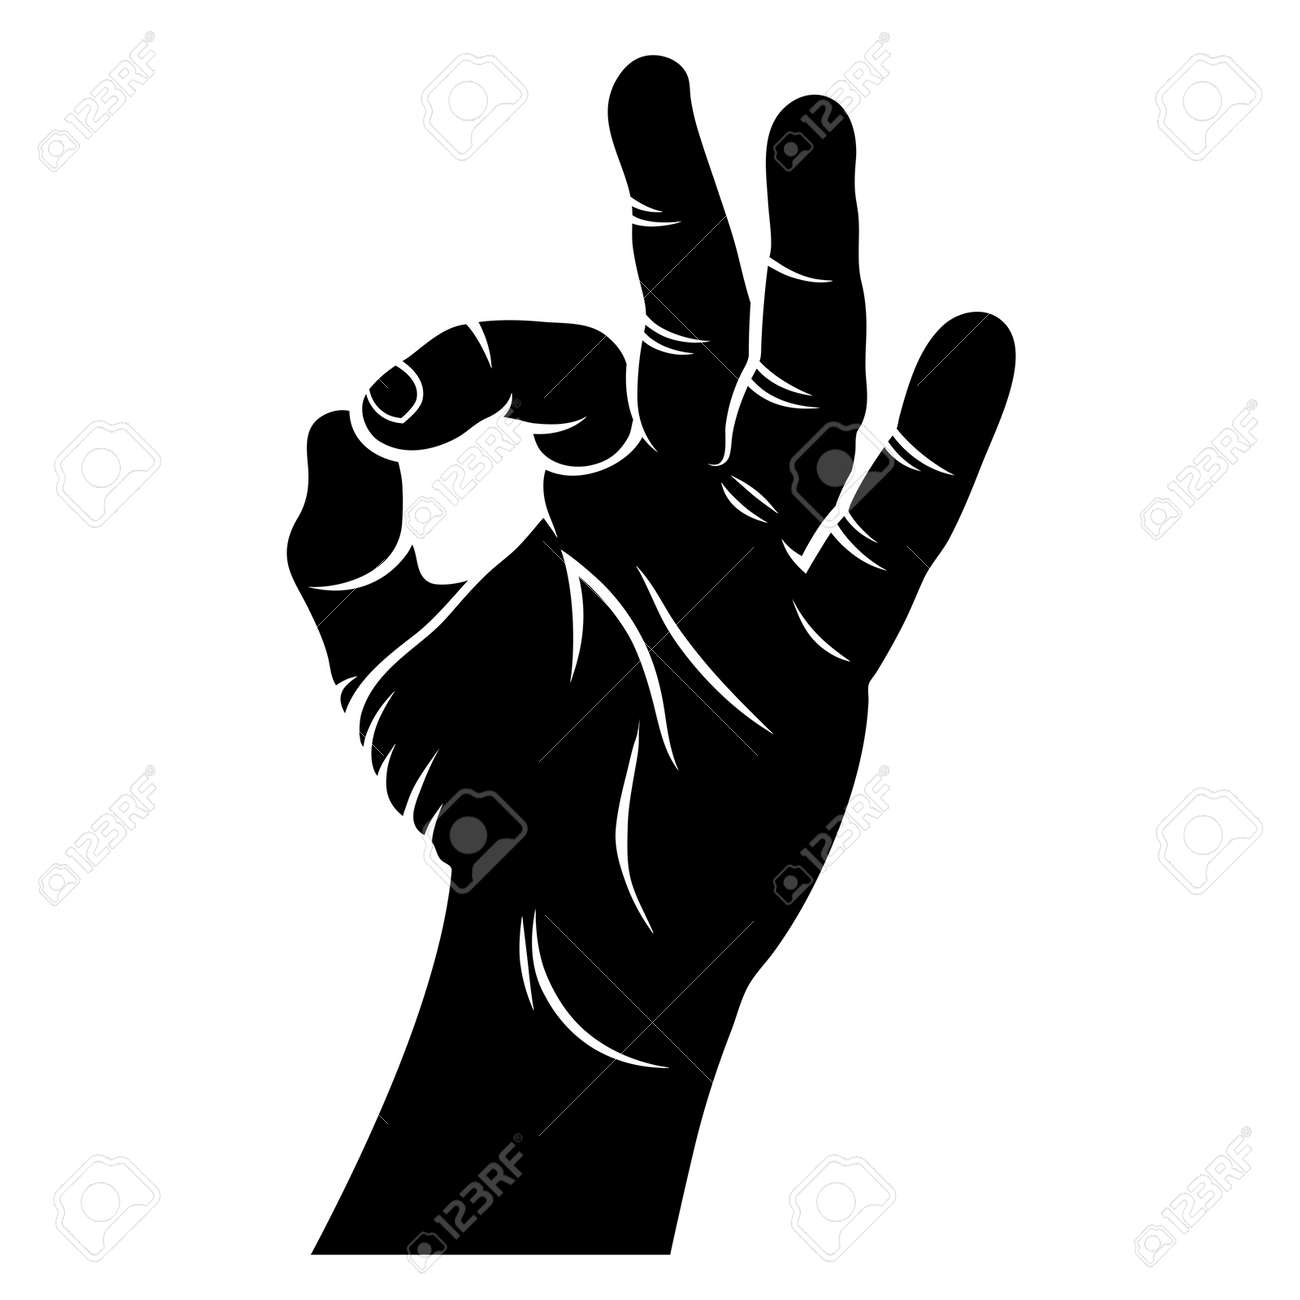 ok hand sign hand drawn sketch vector illustration a hand